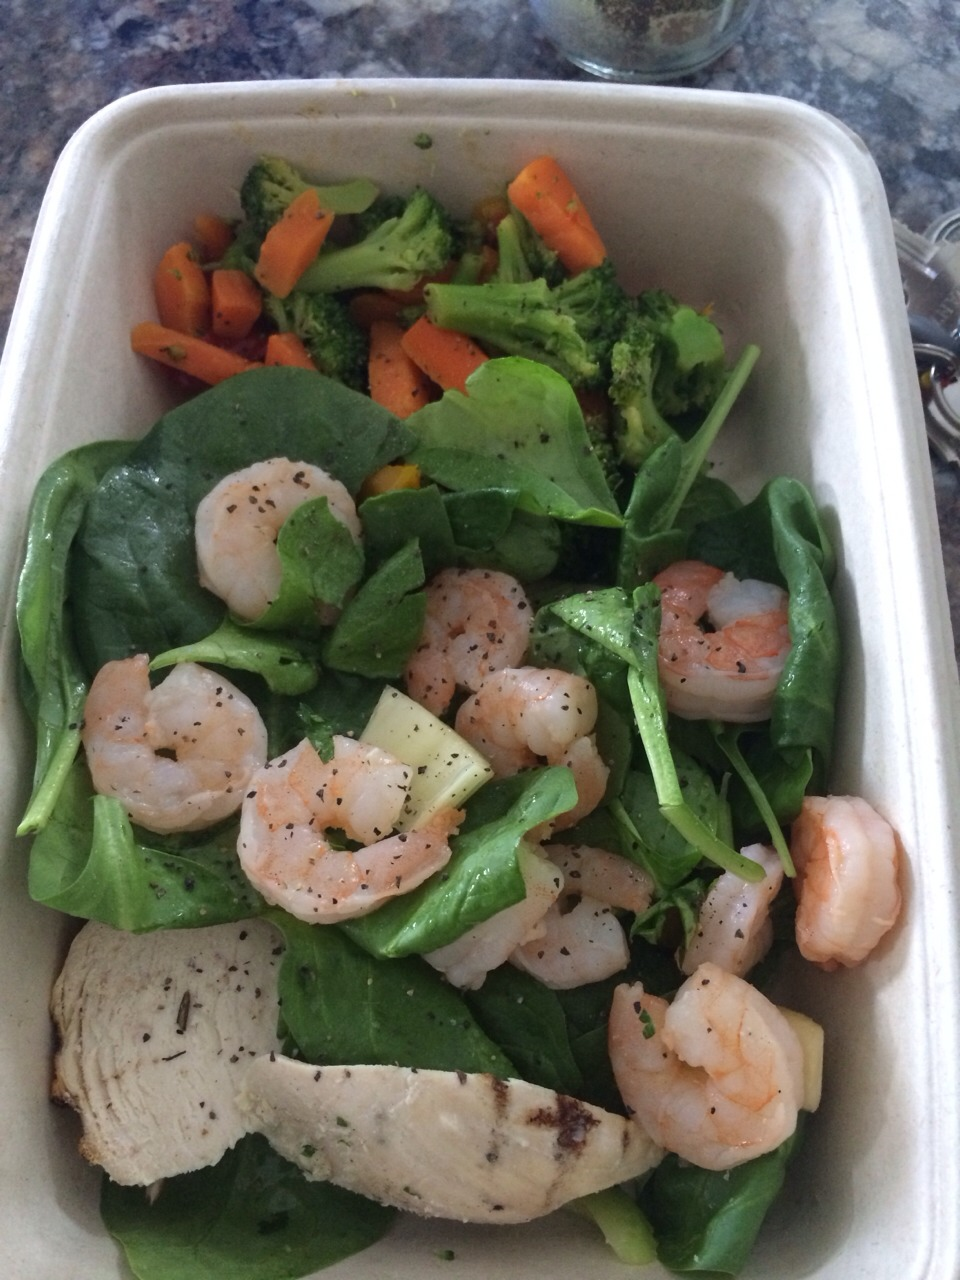 Shrimp weighs next to nothing. Fill your container 1/4 with your choice of lettuce or spinach, a few pieces of vegetables and load up on light proteins like shrimp. This costed $2.83.